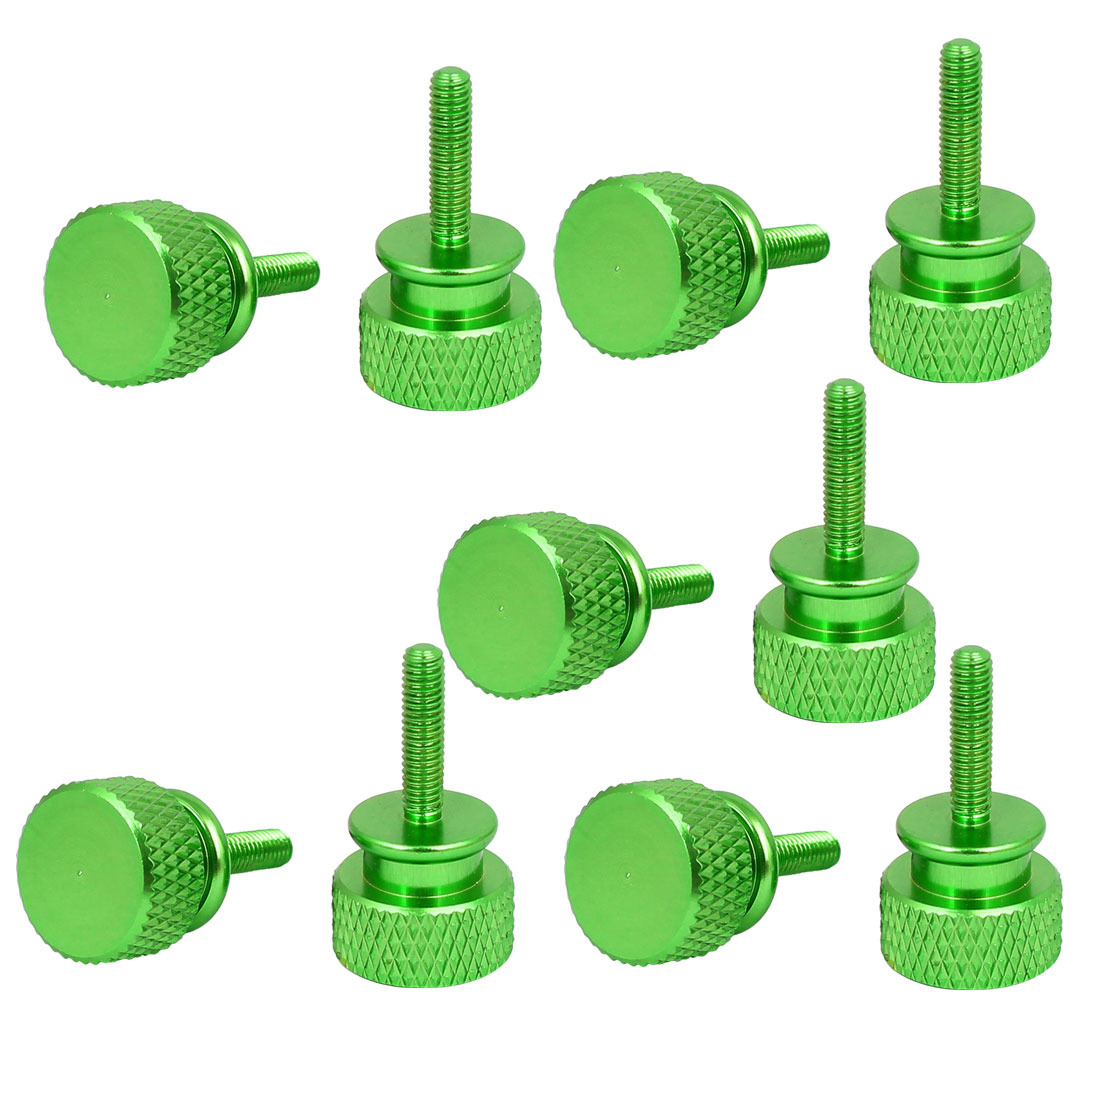 Computer PC Case Aluminum Alloy Knurled Thumb Screws Green M3x12mm 10pcs